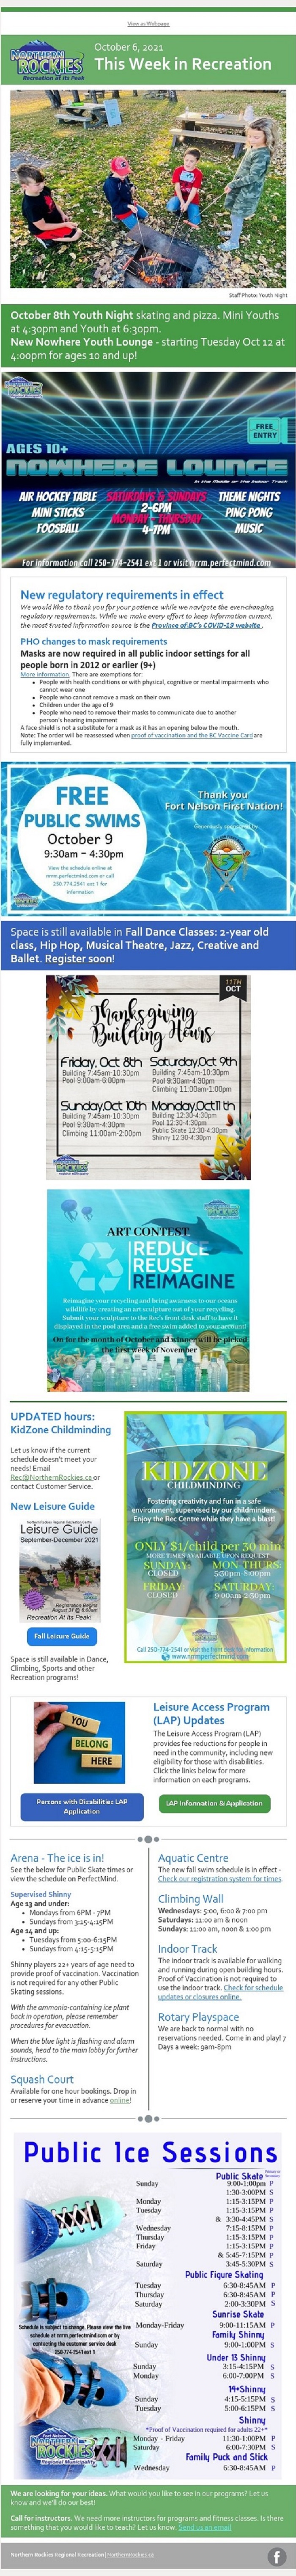 This Week in Rcreation October 6 Newsletter - see html link for accessible version